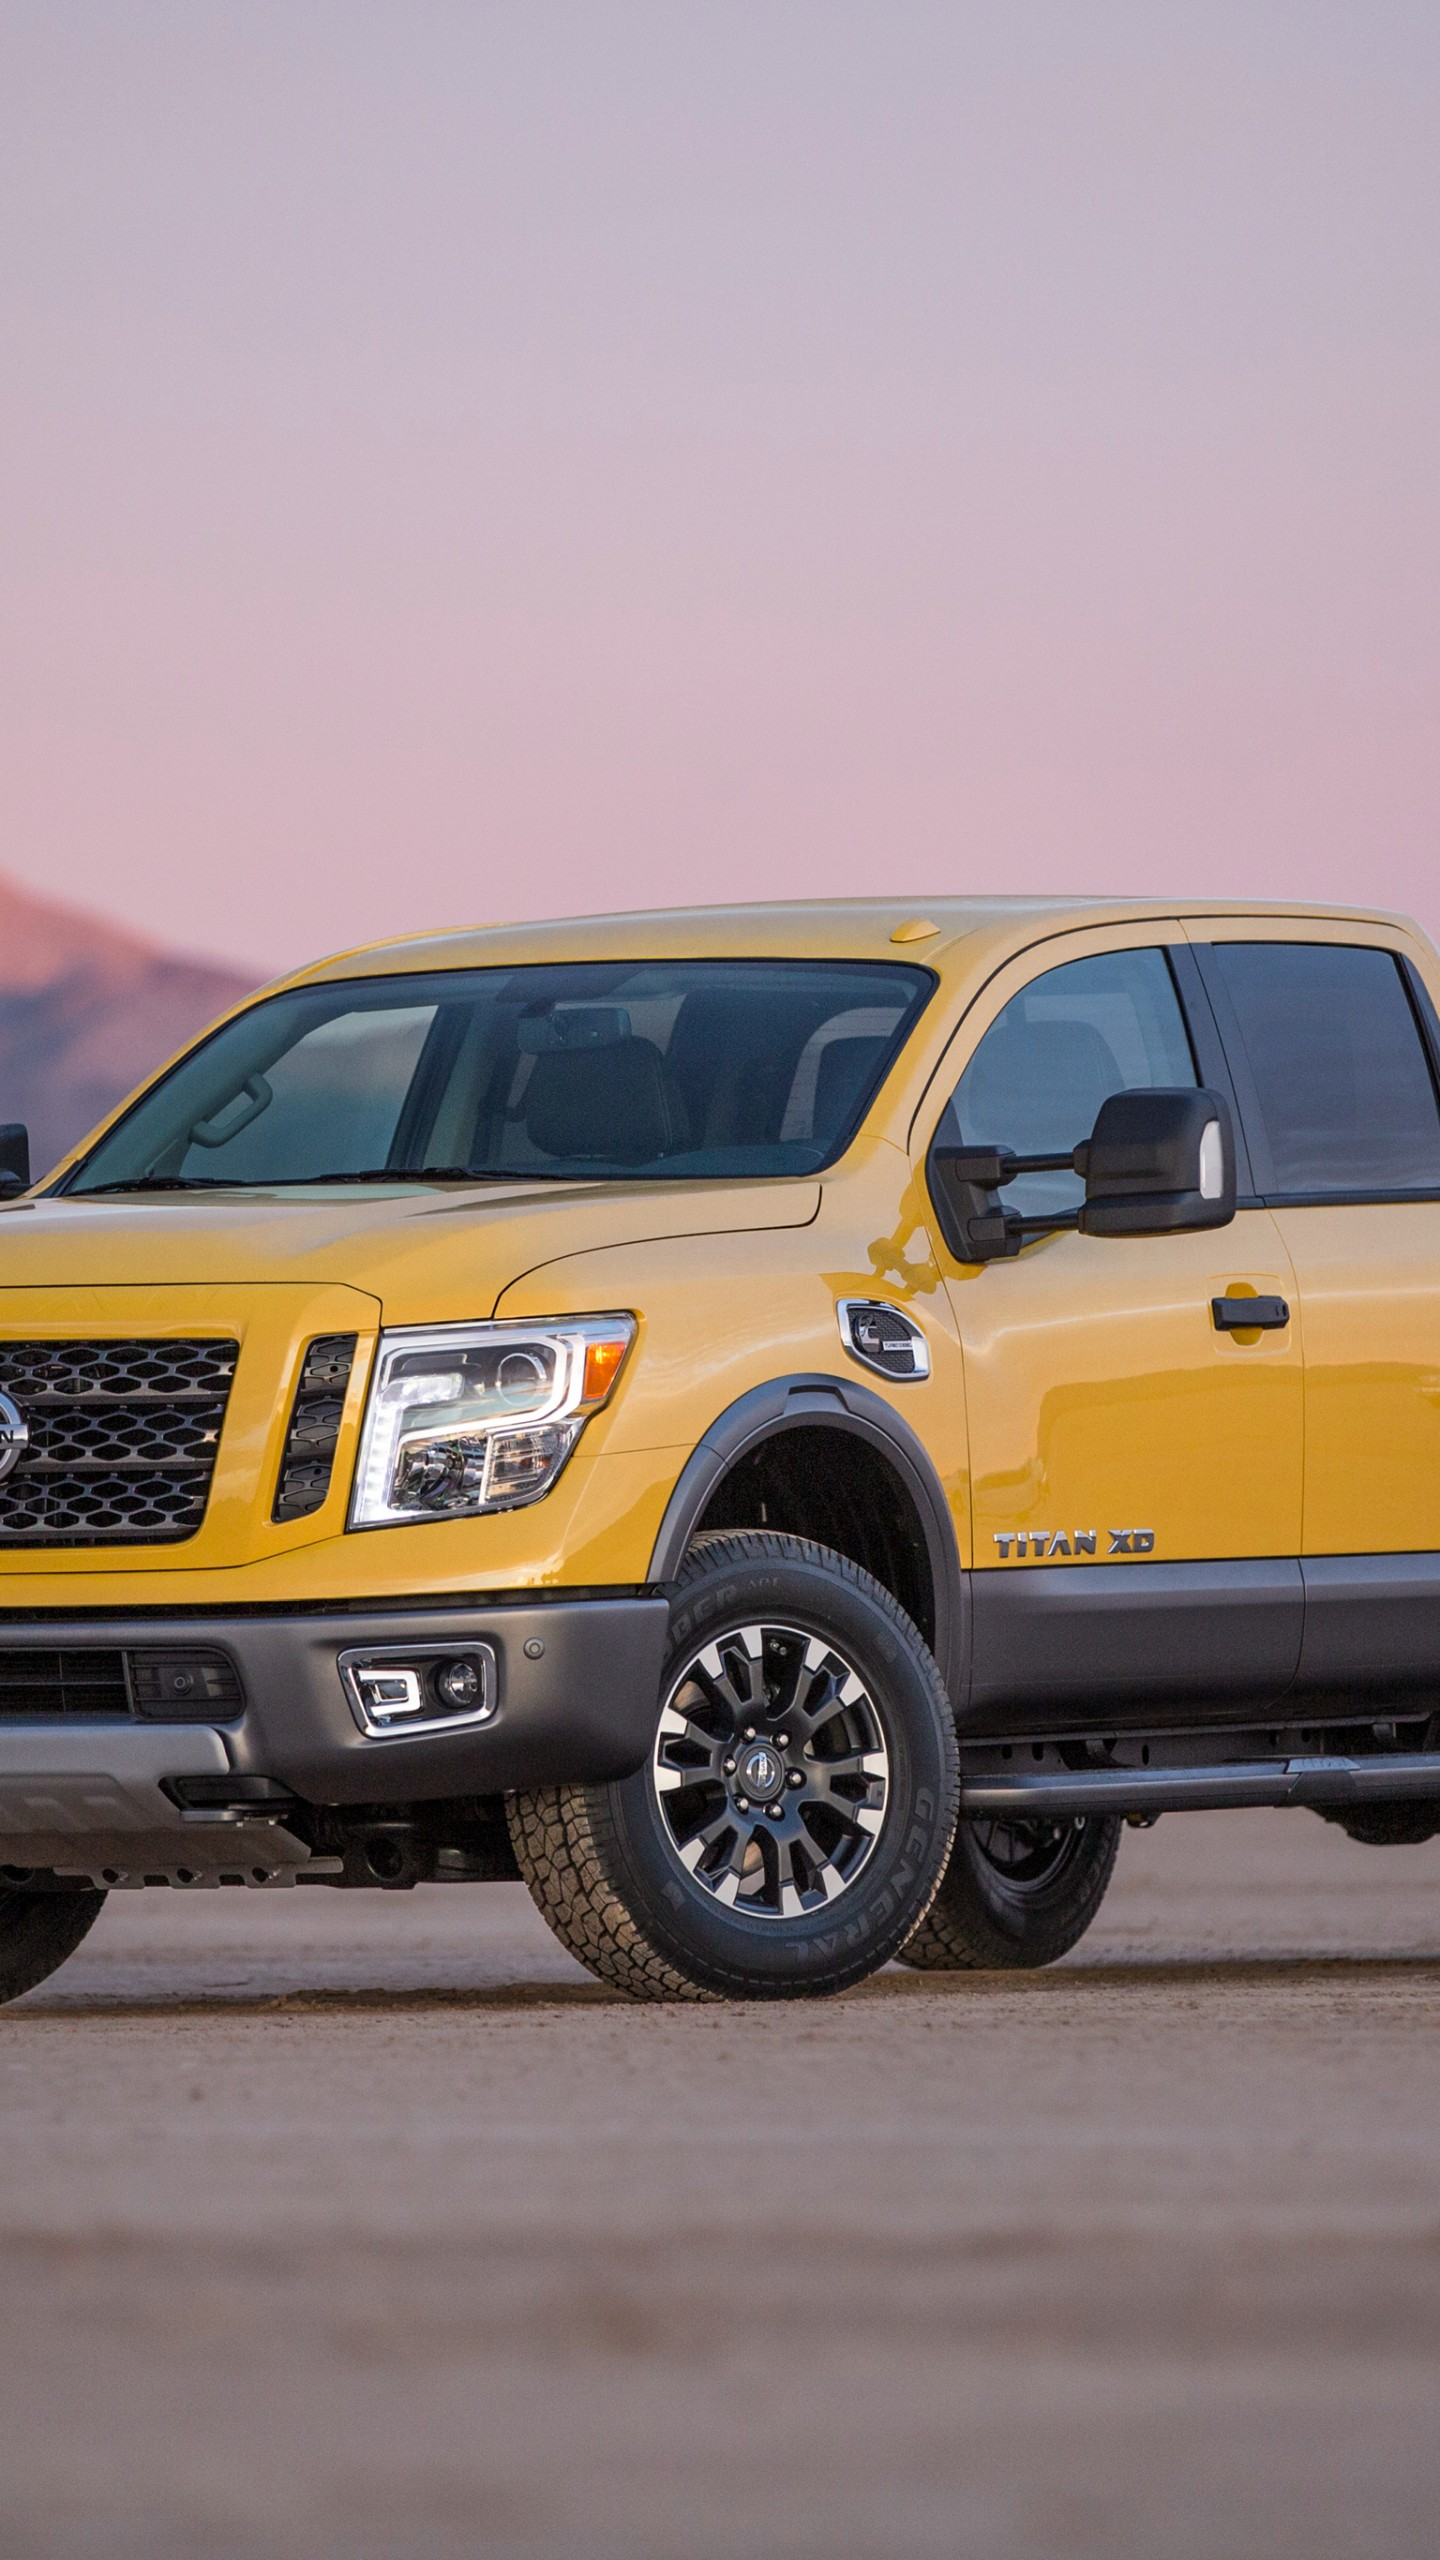 Wallpaper Nissan Titan, pickup, SUV, yellow, 2016, Cars ...